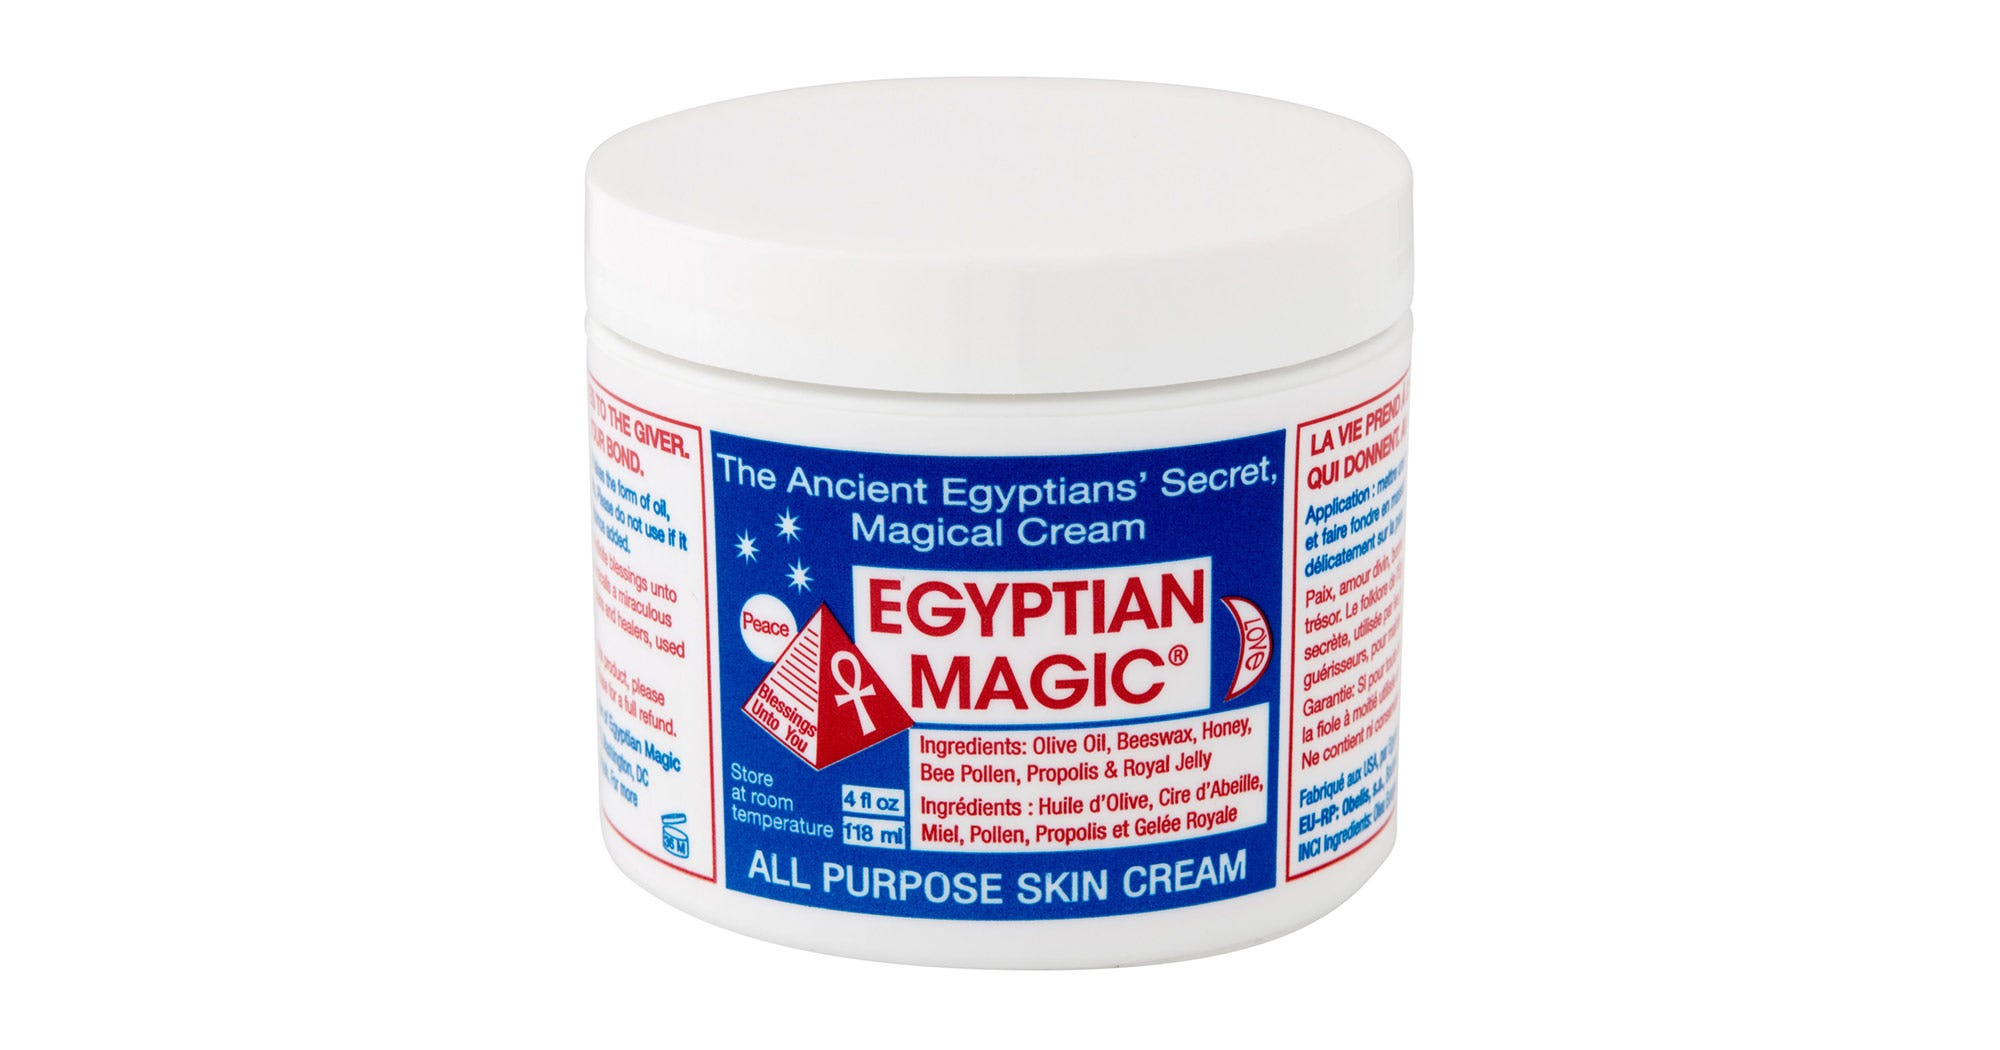 Egyptian Magic Cream Review | POPSUGAR Beauty